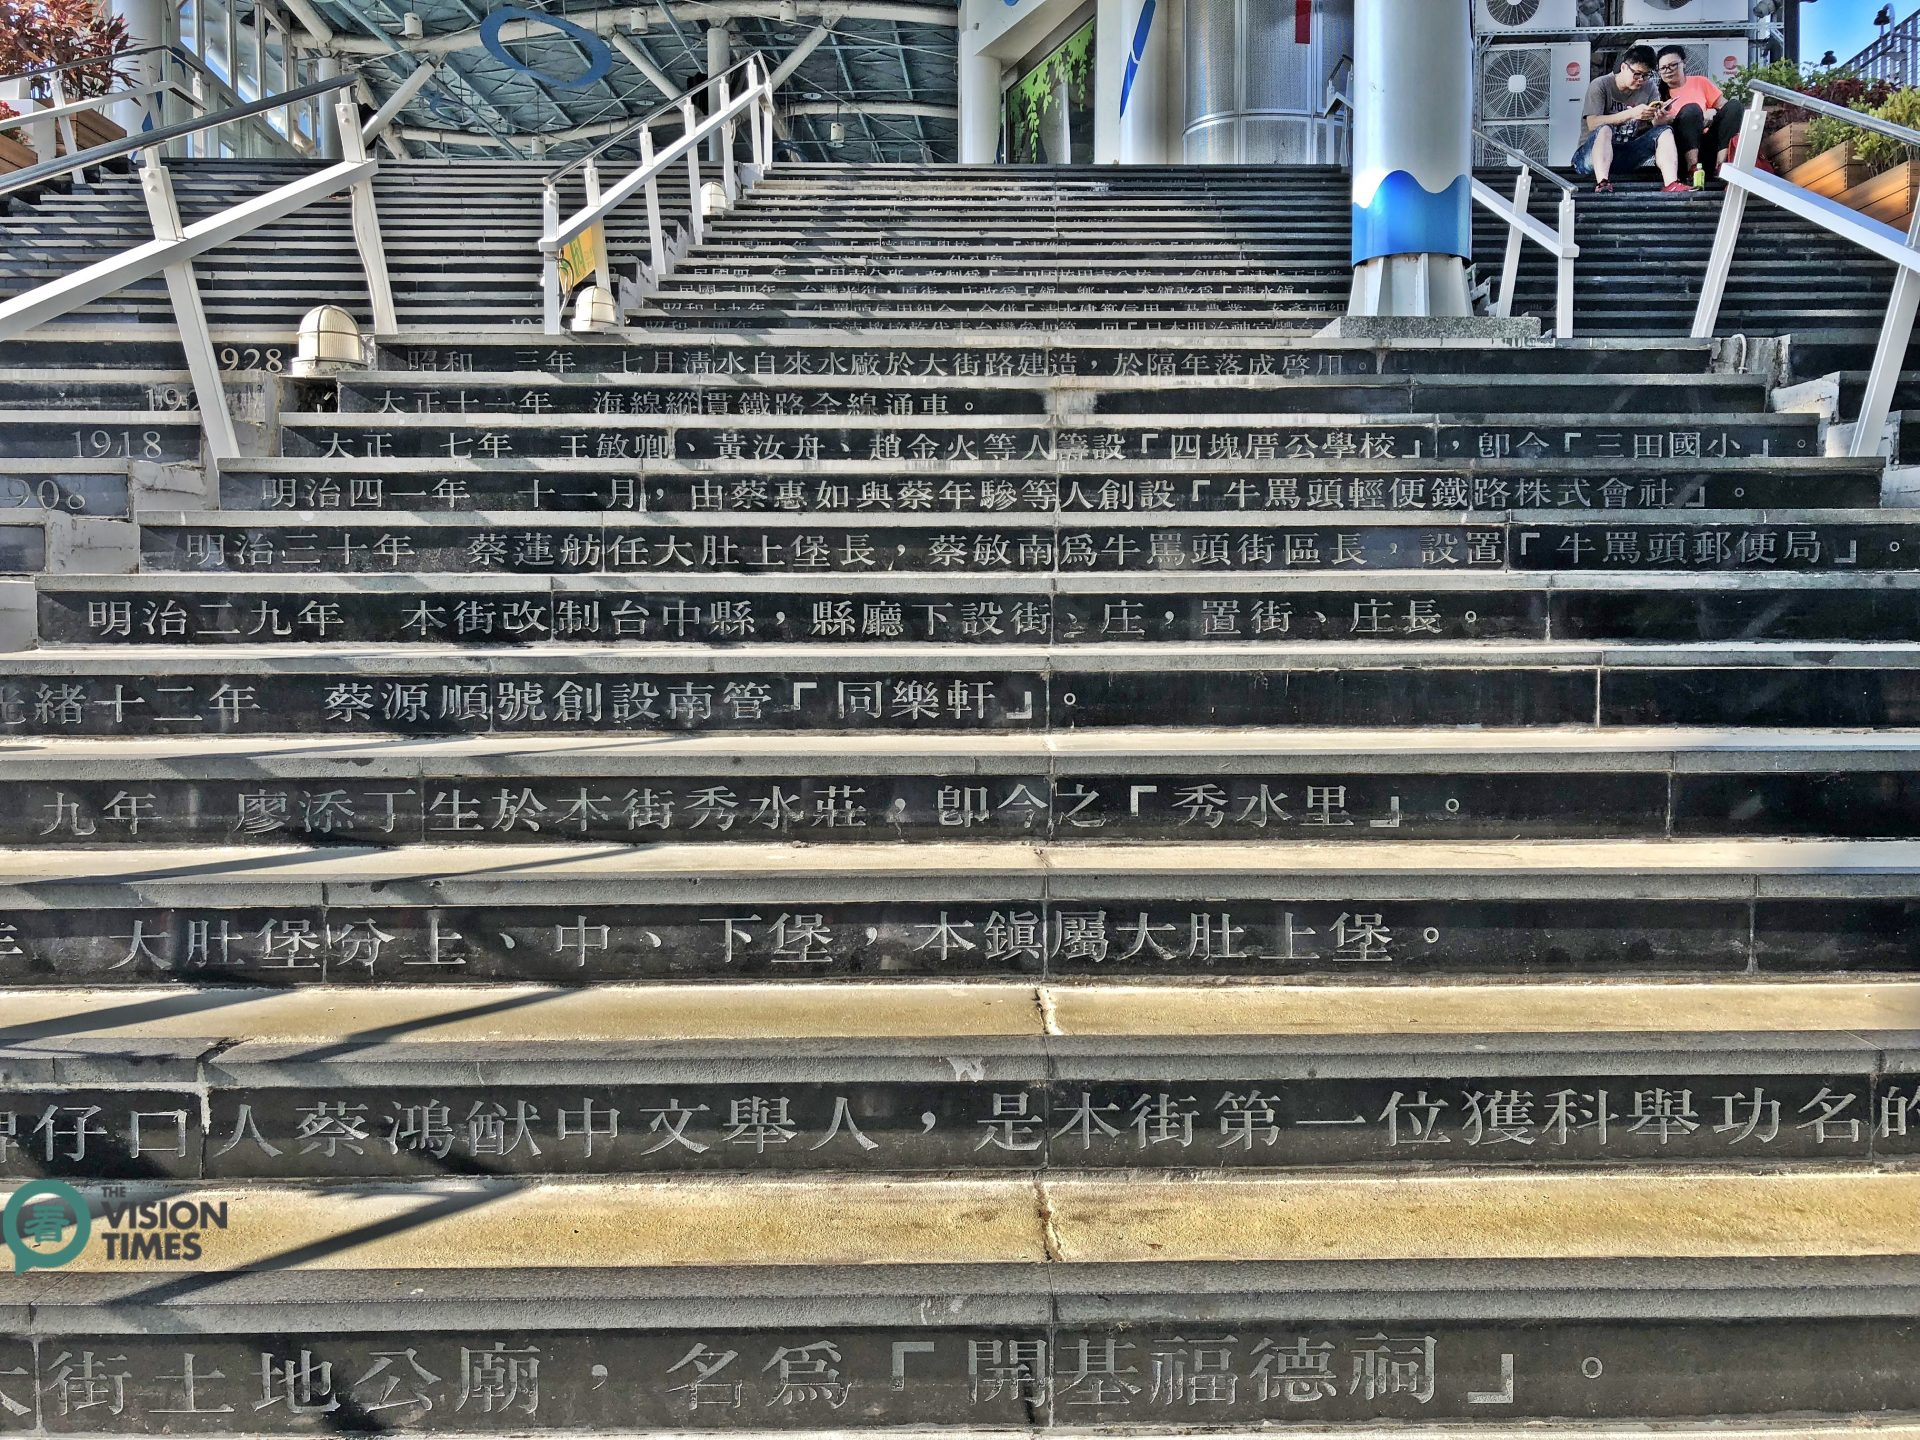 """The Stairs of History"" in Qingshui Service Area, on which major historical events of Qingshui are inscribed. (Image: Billy Shyu / Vision Times)"